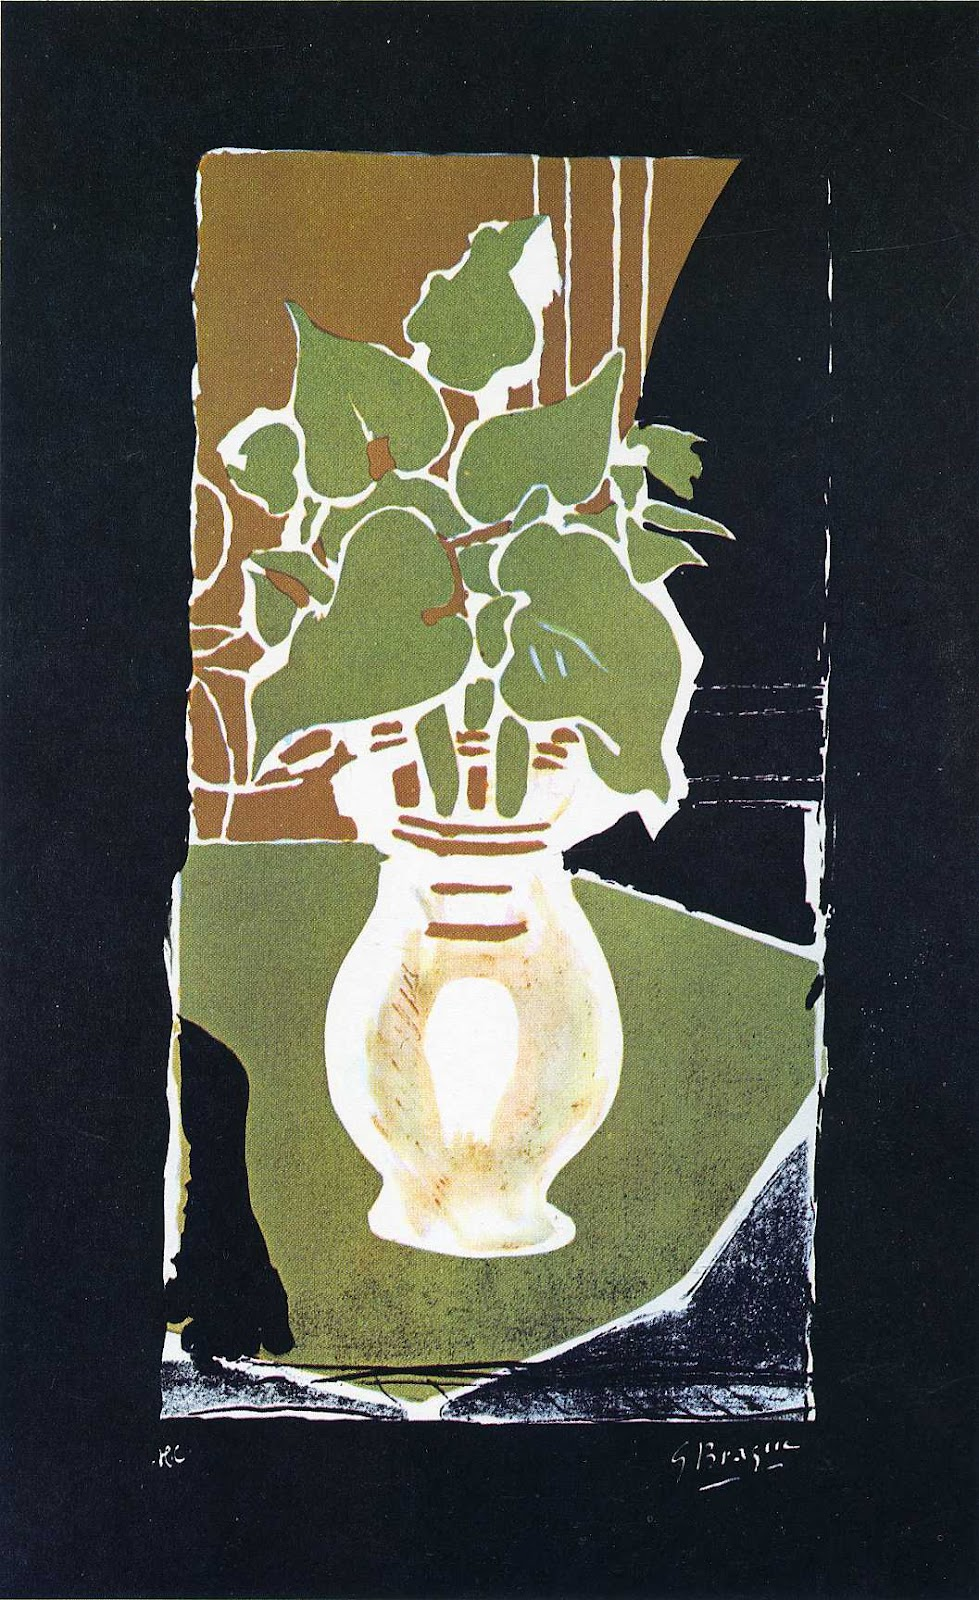 Leaves In Color Of Light, Georges Braque, 1953